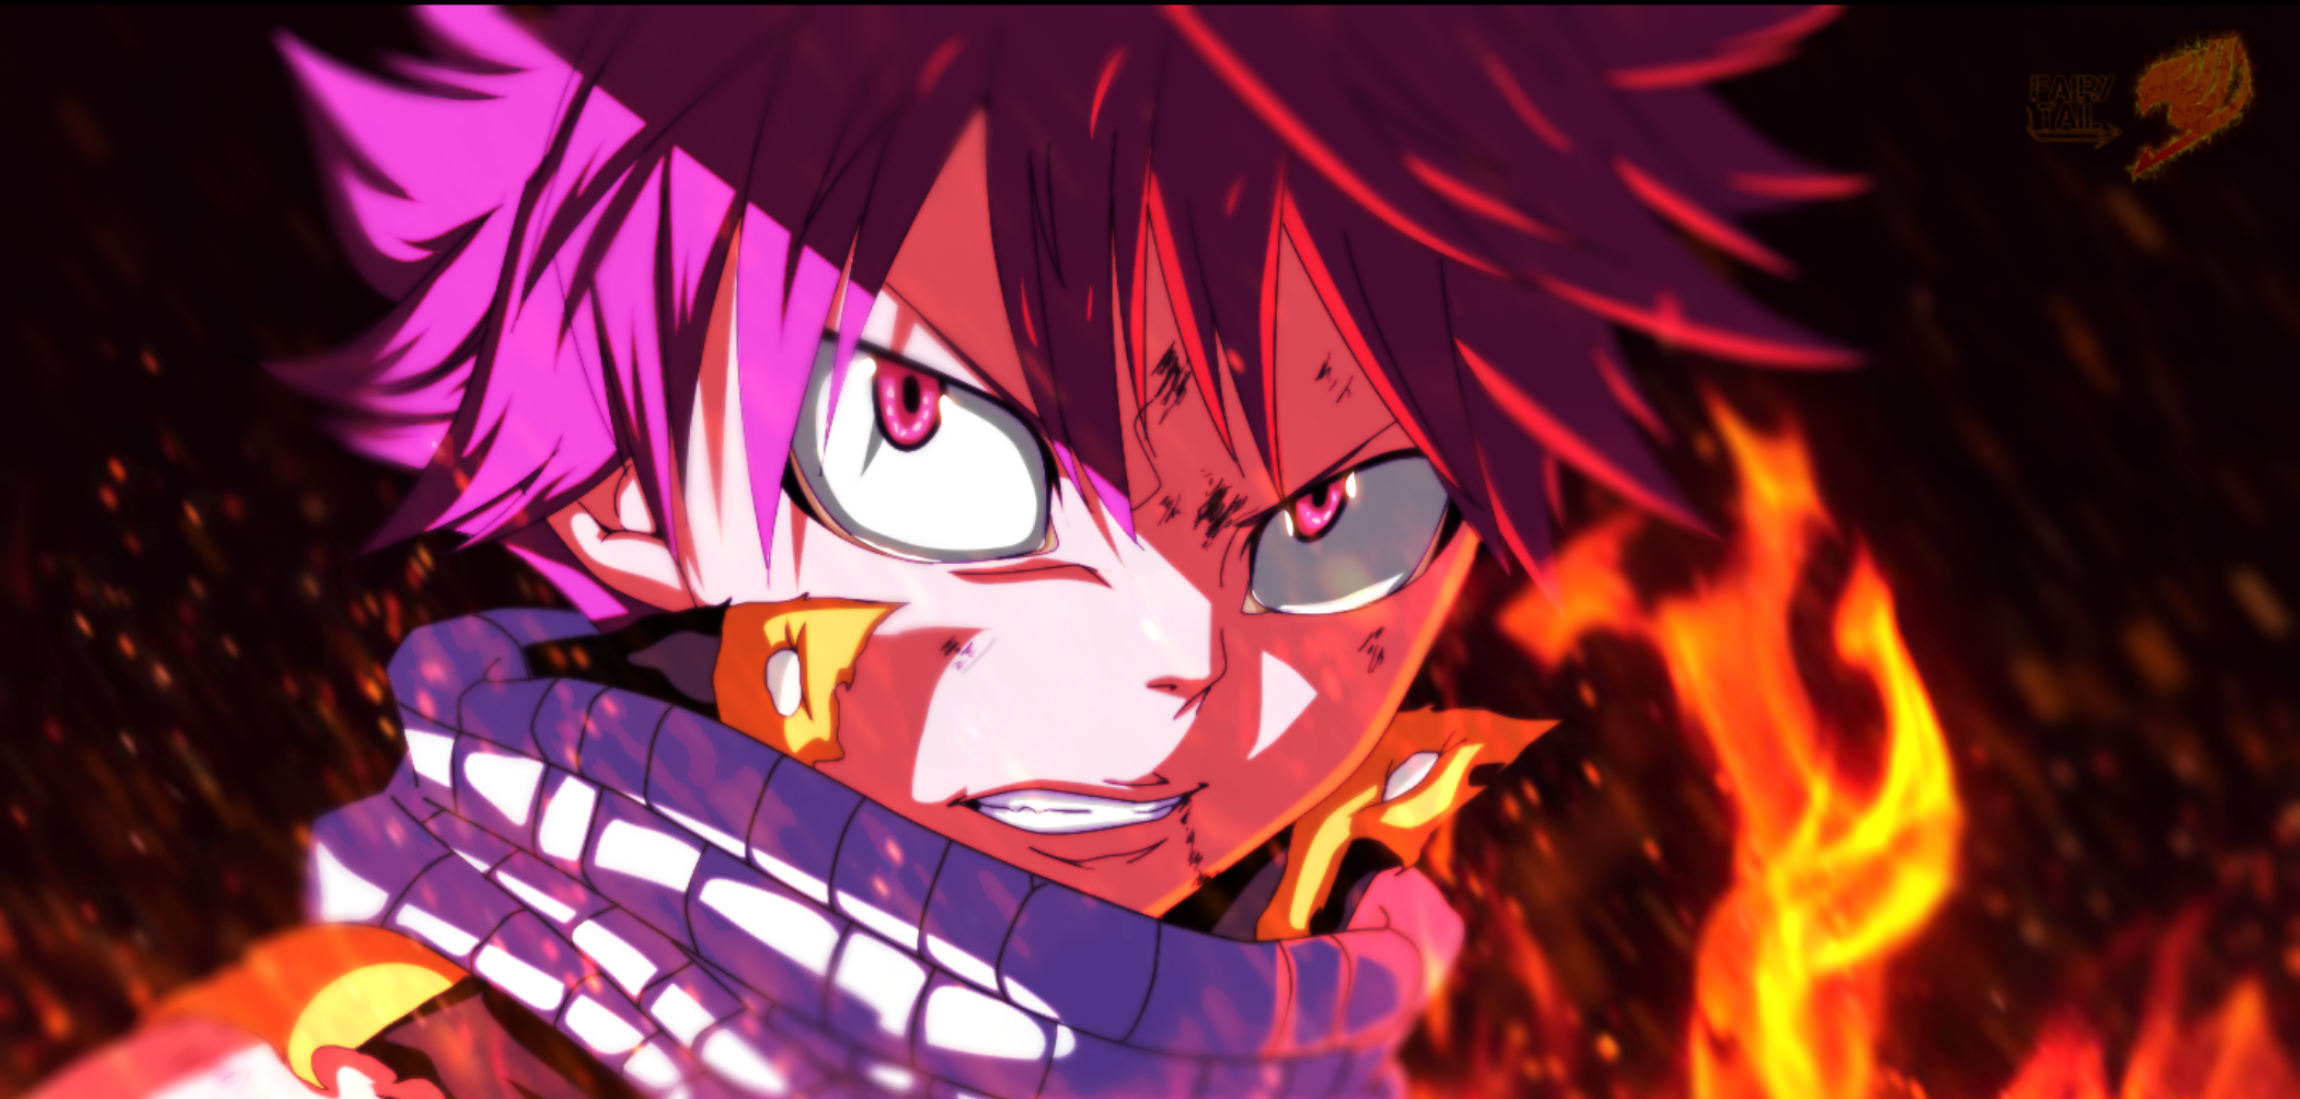 Fairy tail background 1920x1080 hd cobaltcrowproductions.xyz. Natsu Dragneel, HD Anime, 4k Wallpapers, Images ...